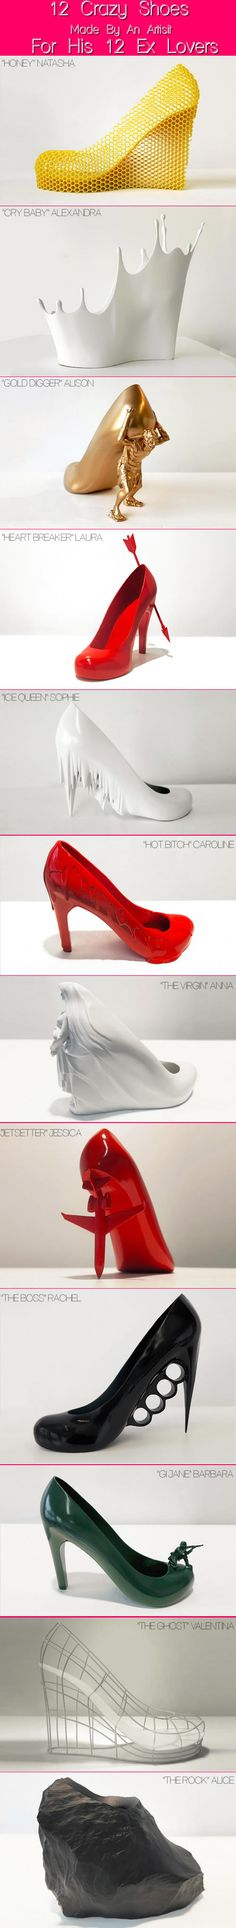 Artist Creates 12 Shoes For 12 Ex Lovers.